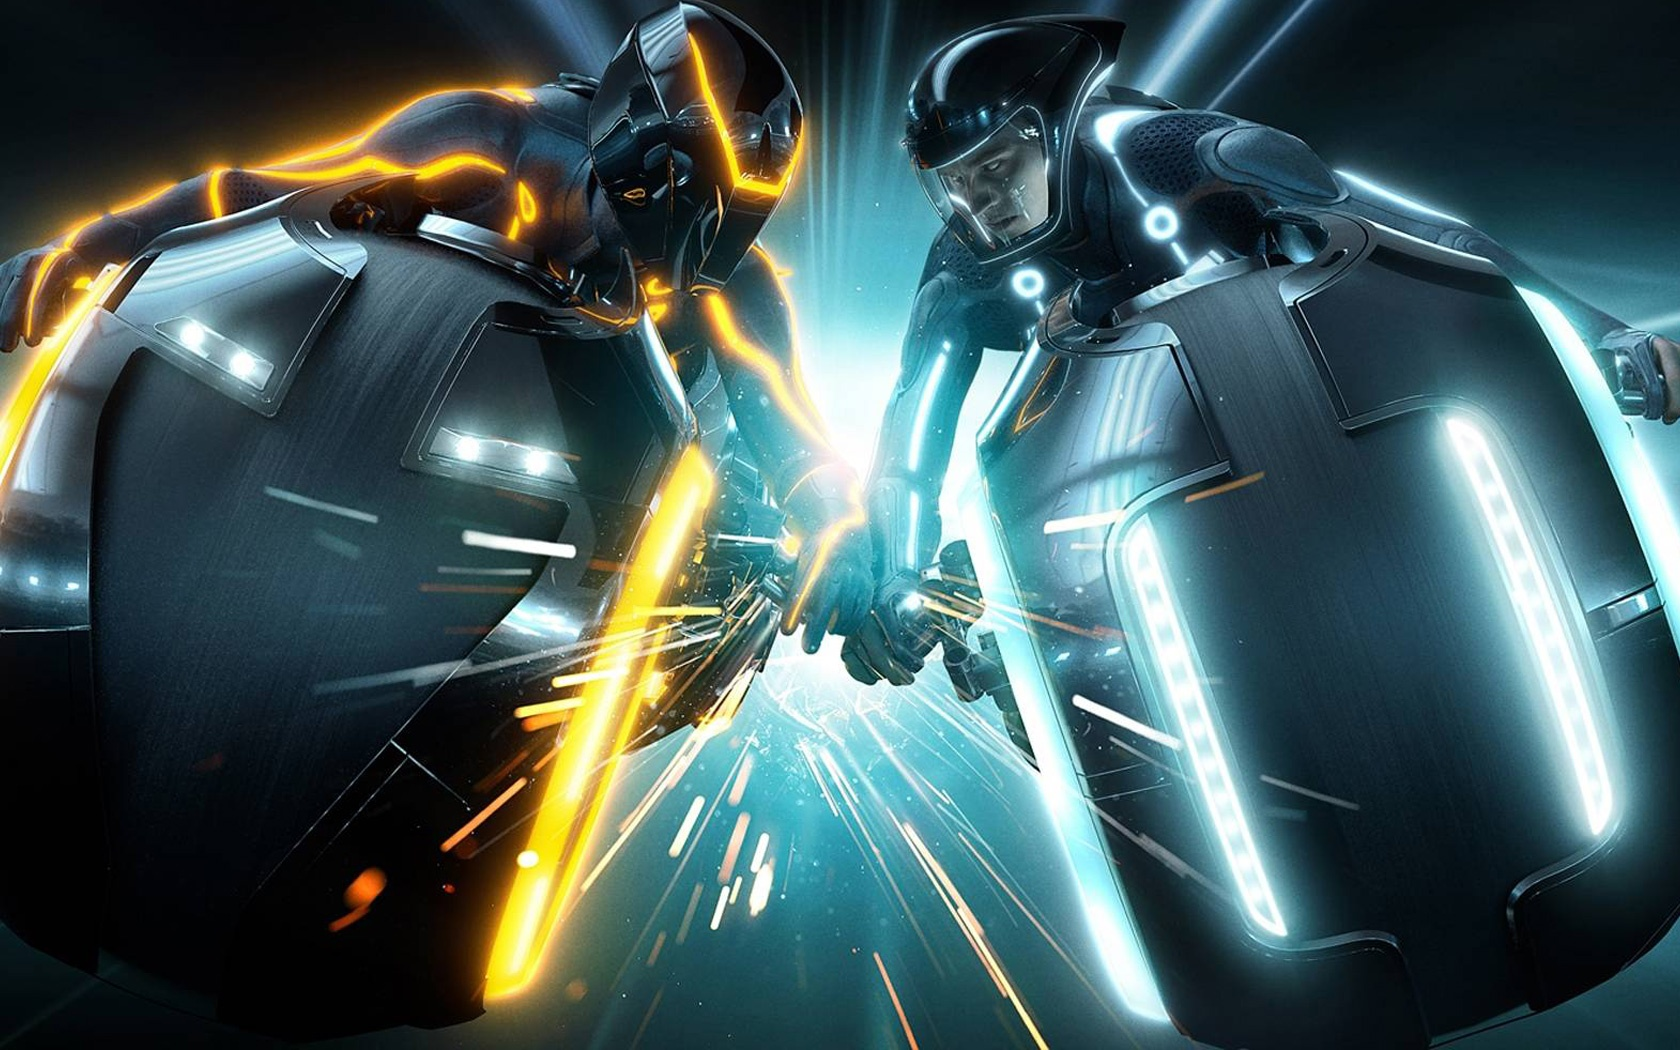 Tron Legacy Wallpapers (3)